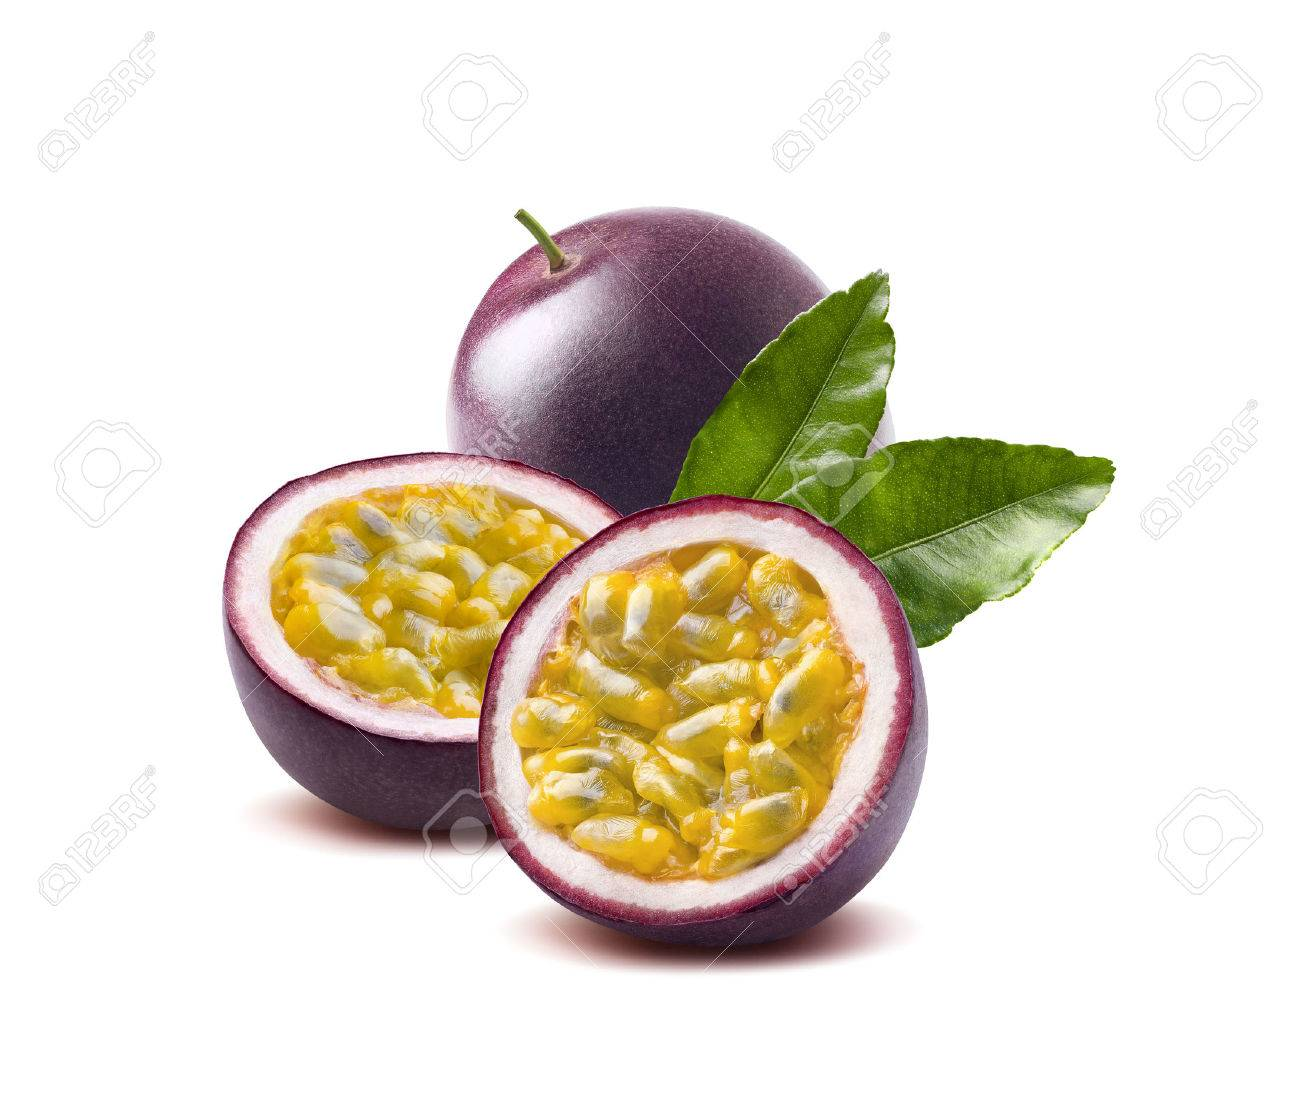 Passion fruit leaves passionfruit maraquia isolated on white background as package design element - 57008514